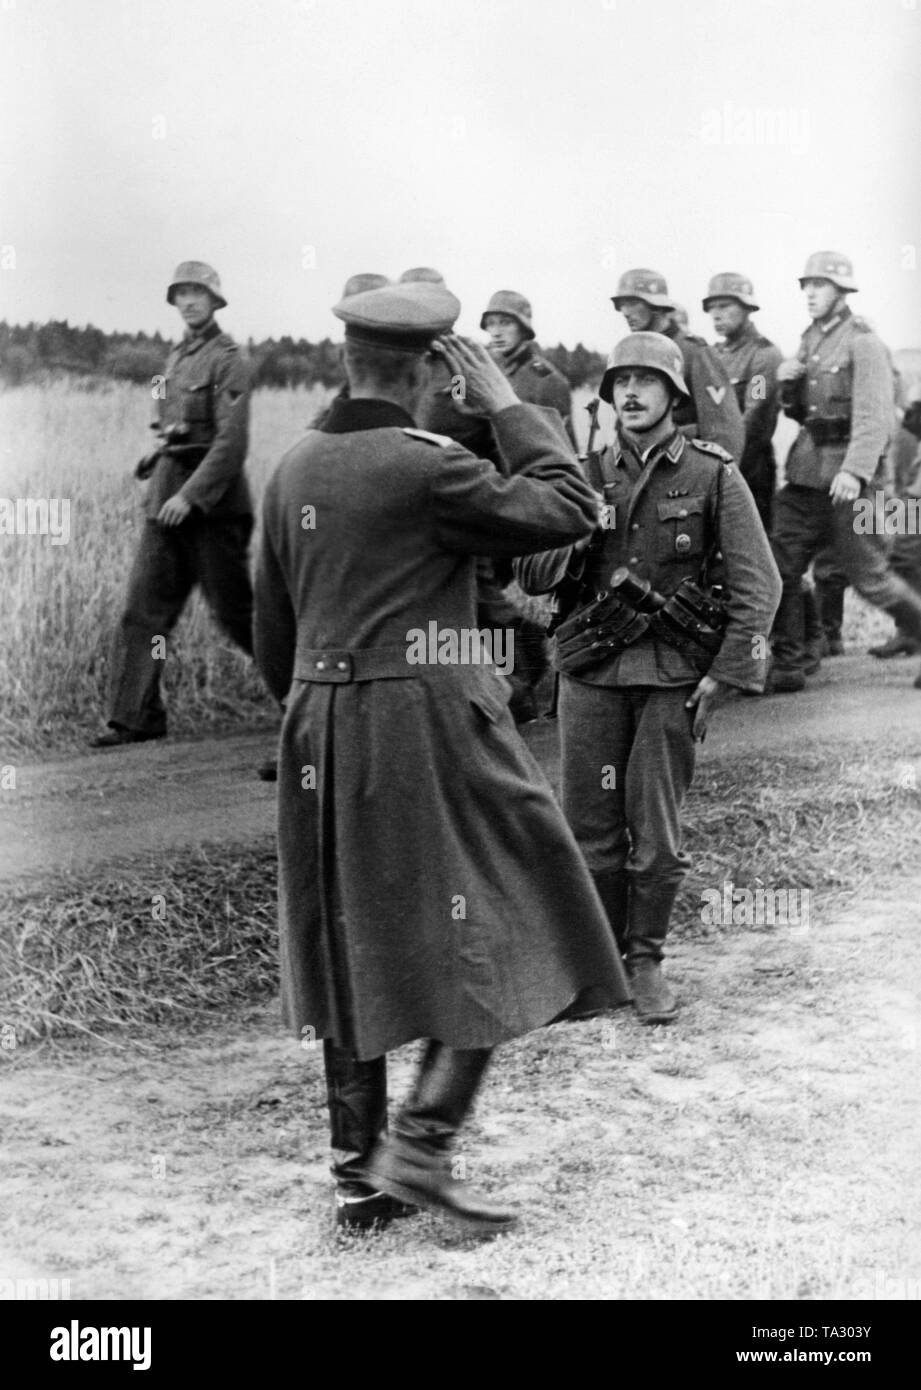 A platoon leader, a sergeant (right in front), reports to his superior officer the completed search for scattered units of the Red Army. Photo: war correspondent Fenske. Stock Photo